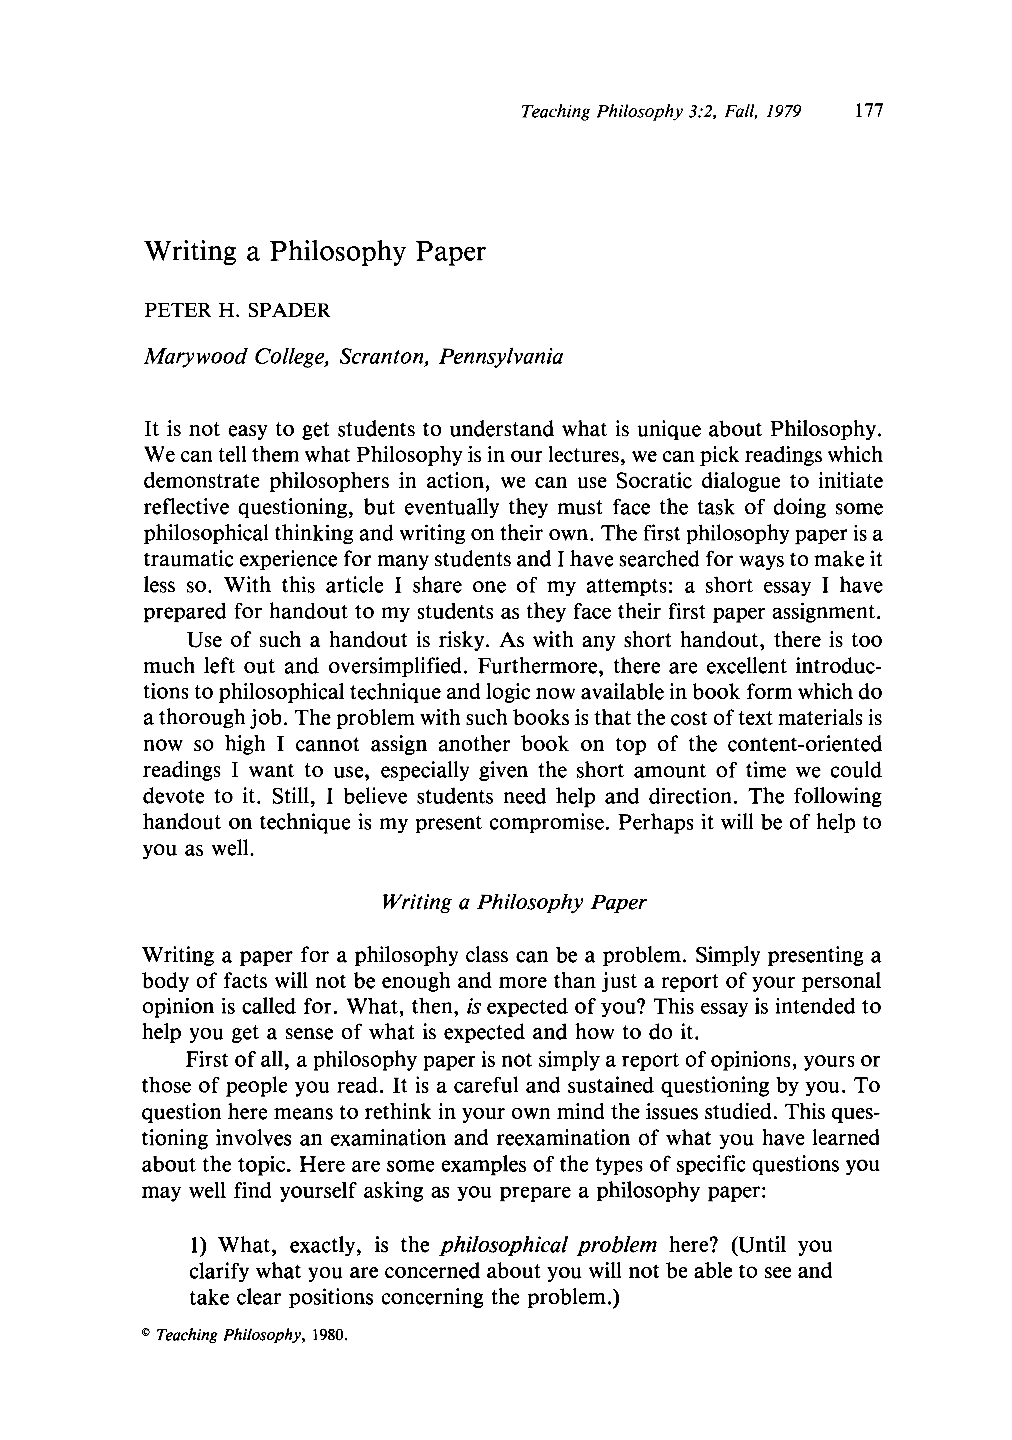 philosophy essay rubric college